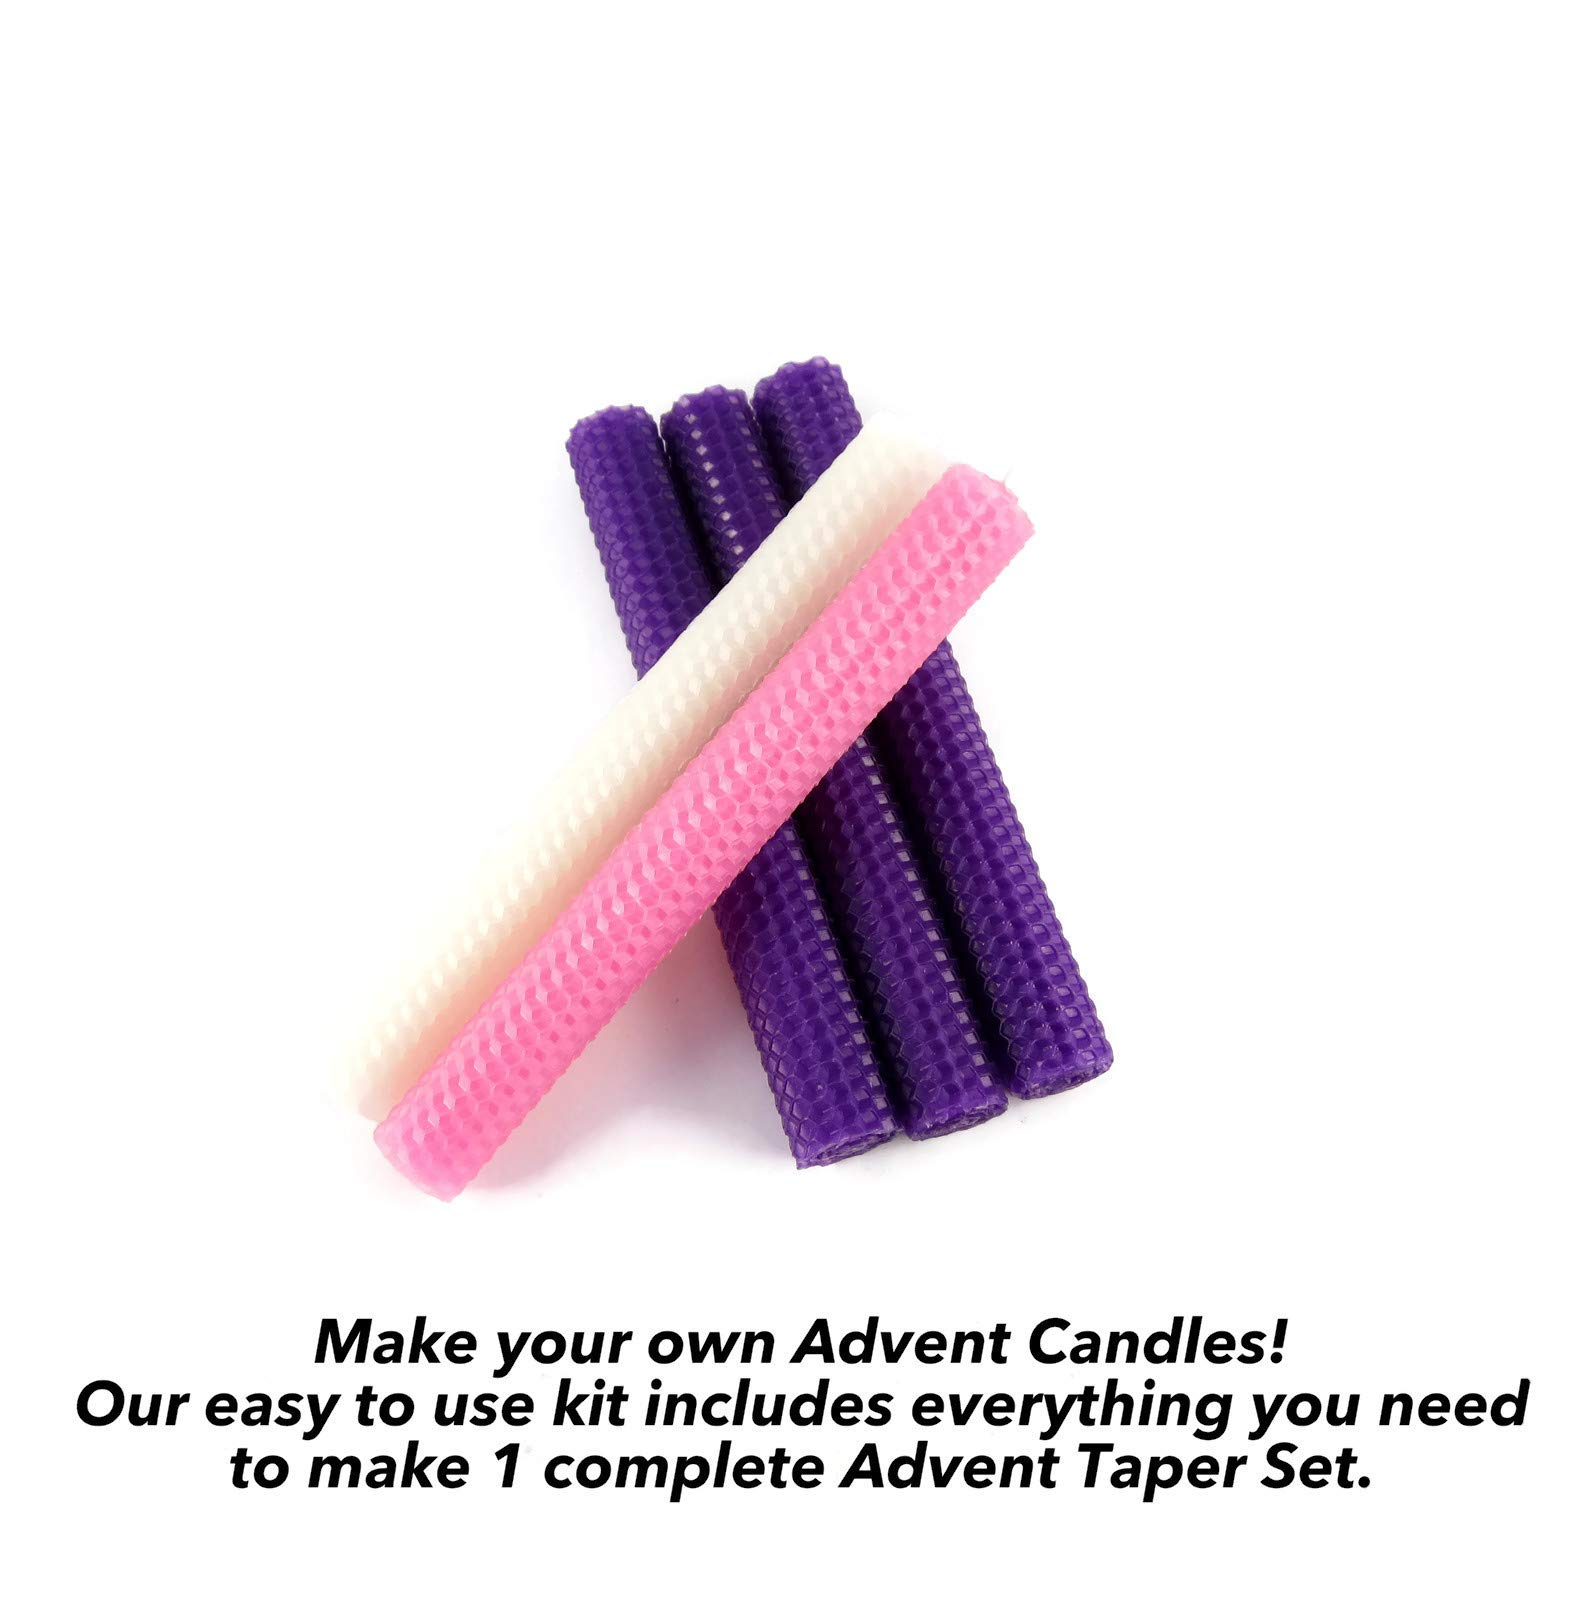 Beeswax Advent Taper Candle Making Kit - Makes One Advent Candle Set